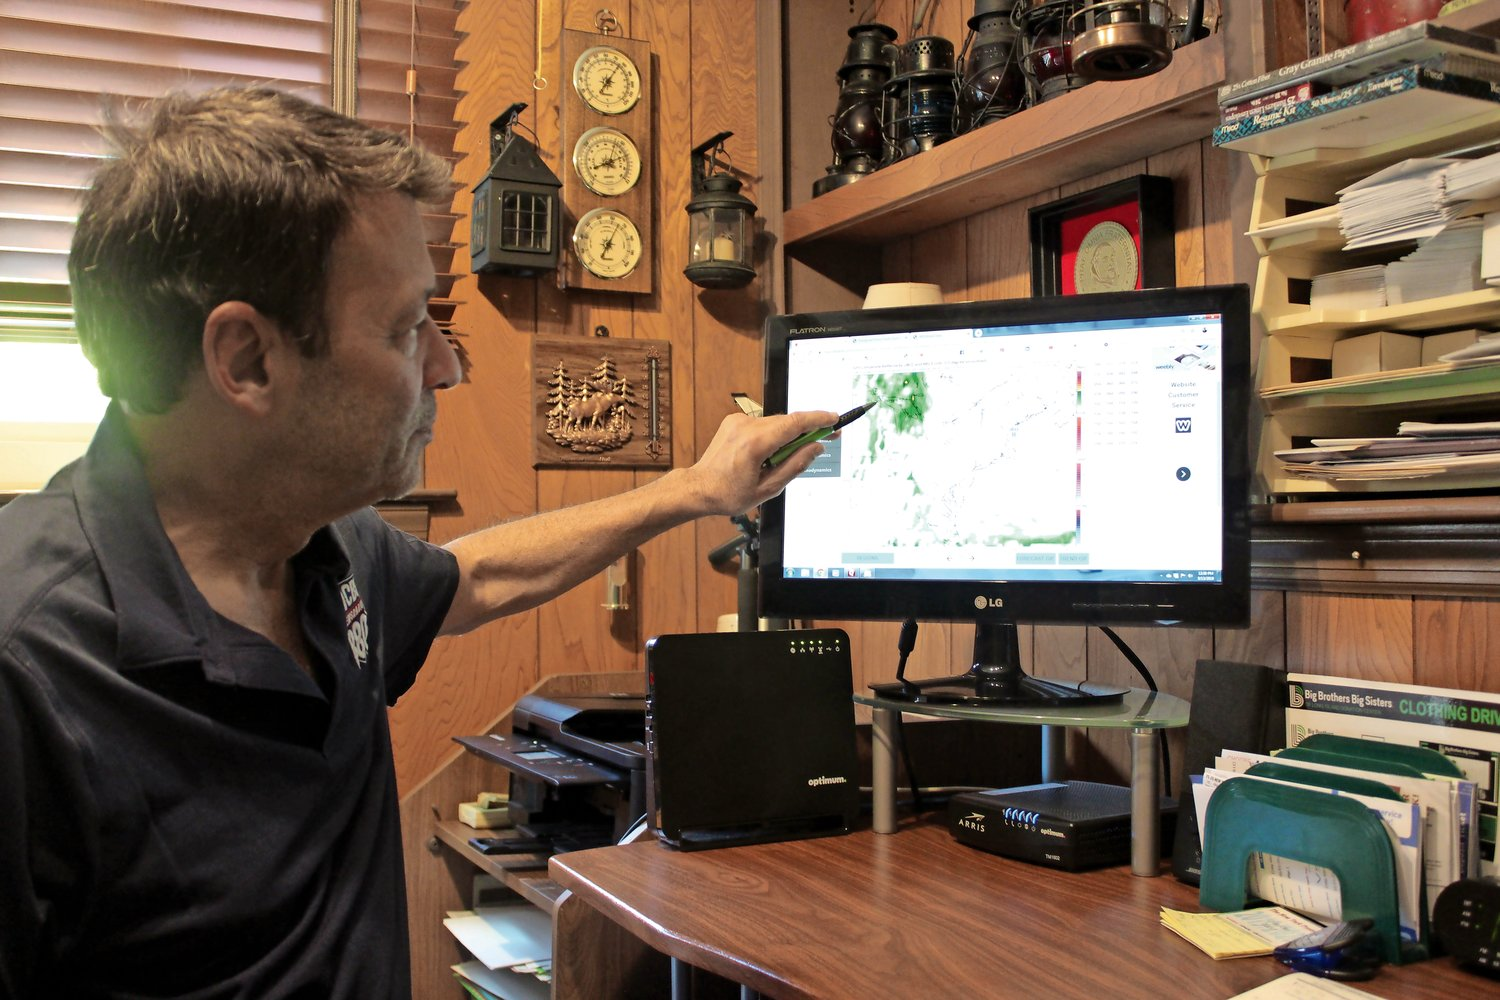 Allen tracks the day's weather forecast on an assortment of weather models from his home office in Merrick.